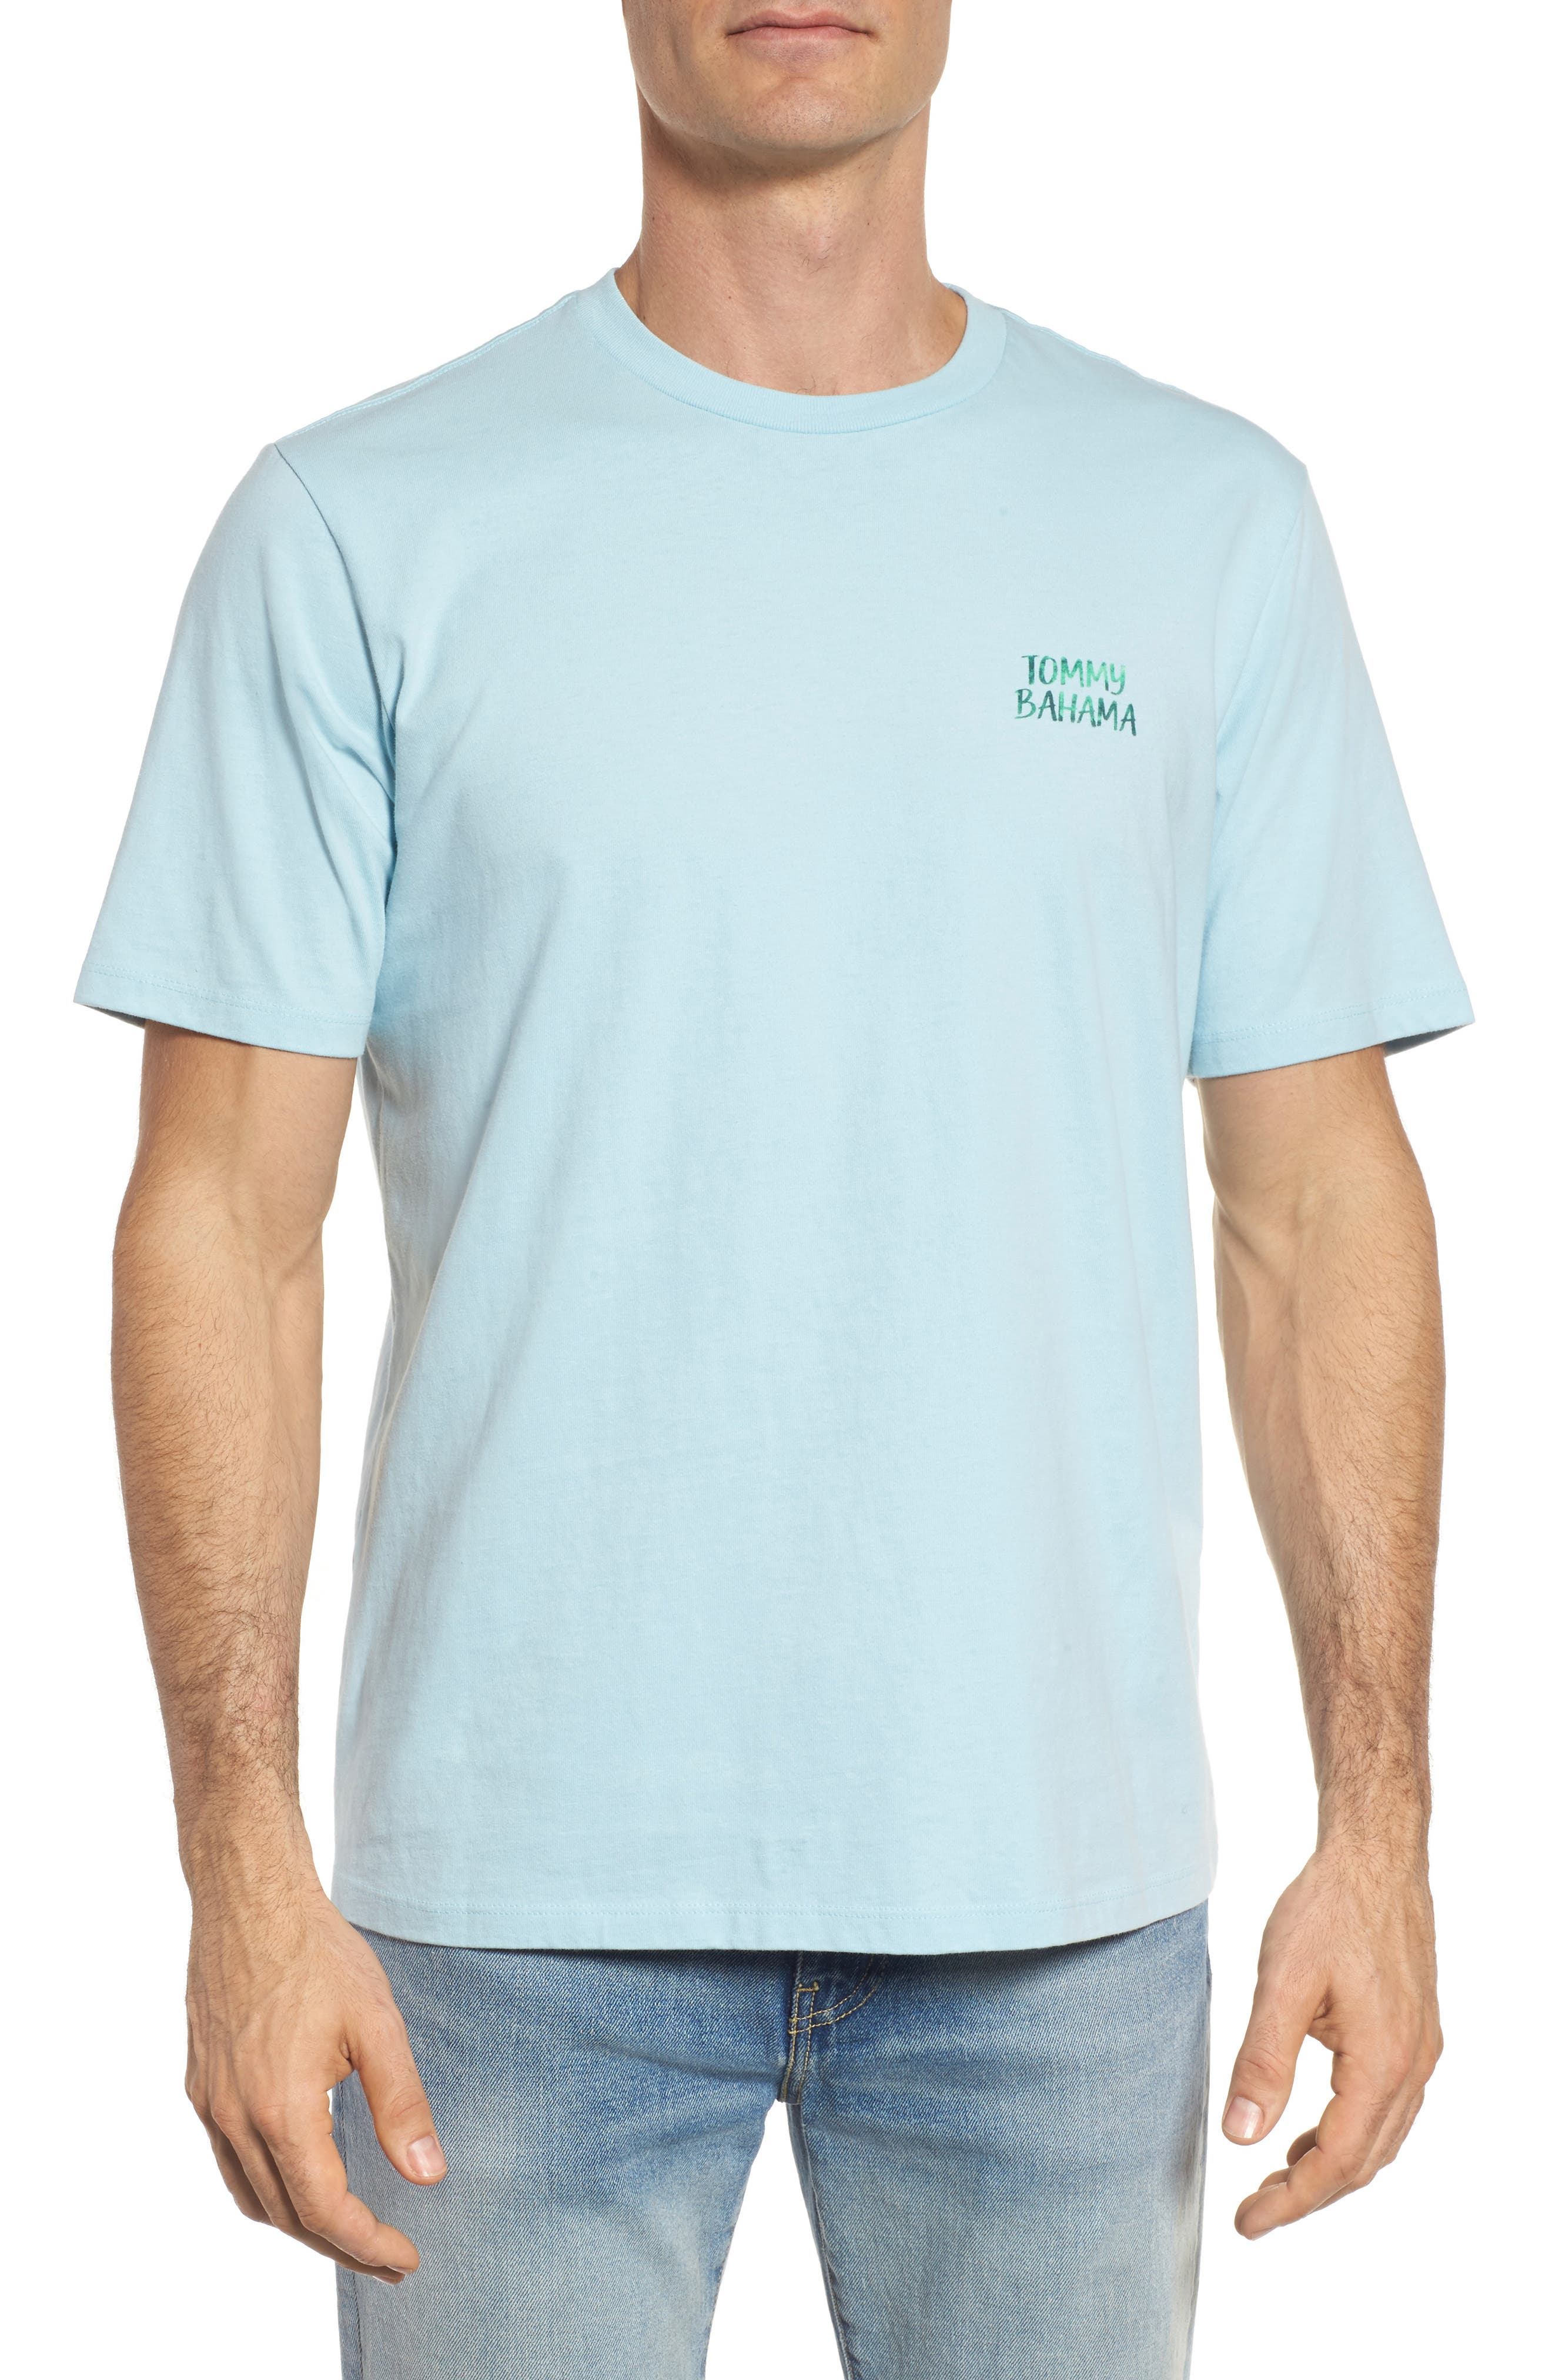 Alternate Image 2  - Tommy Bahama Barcode Graphic T-Shirt